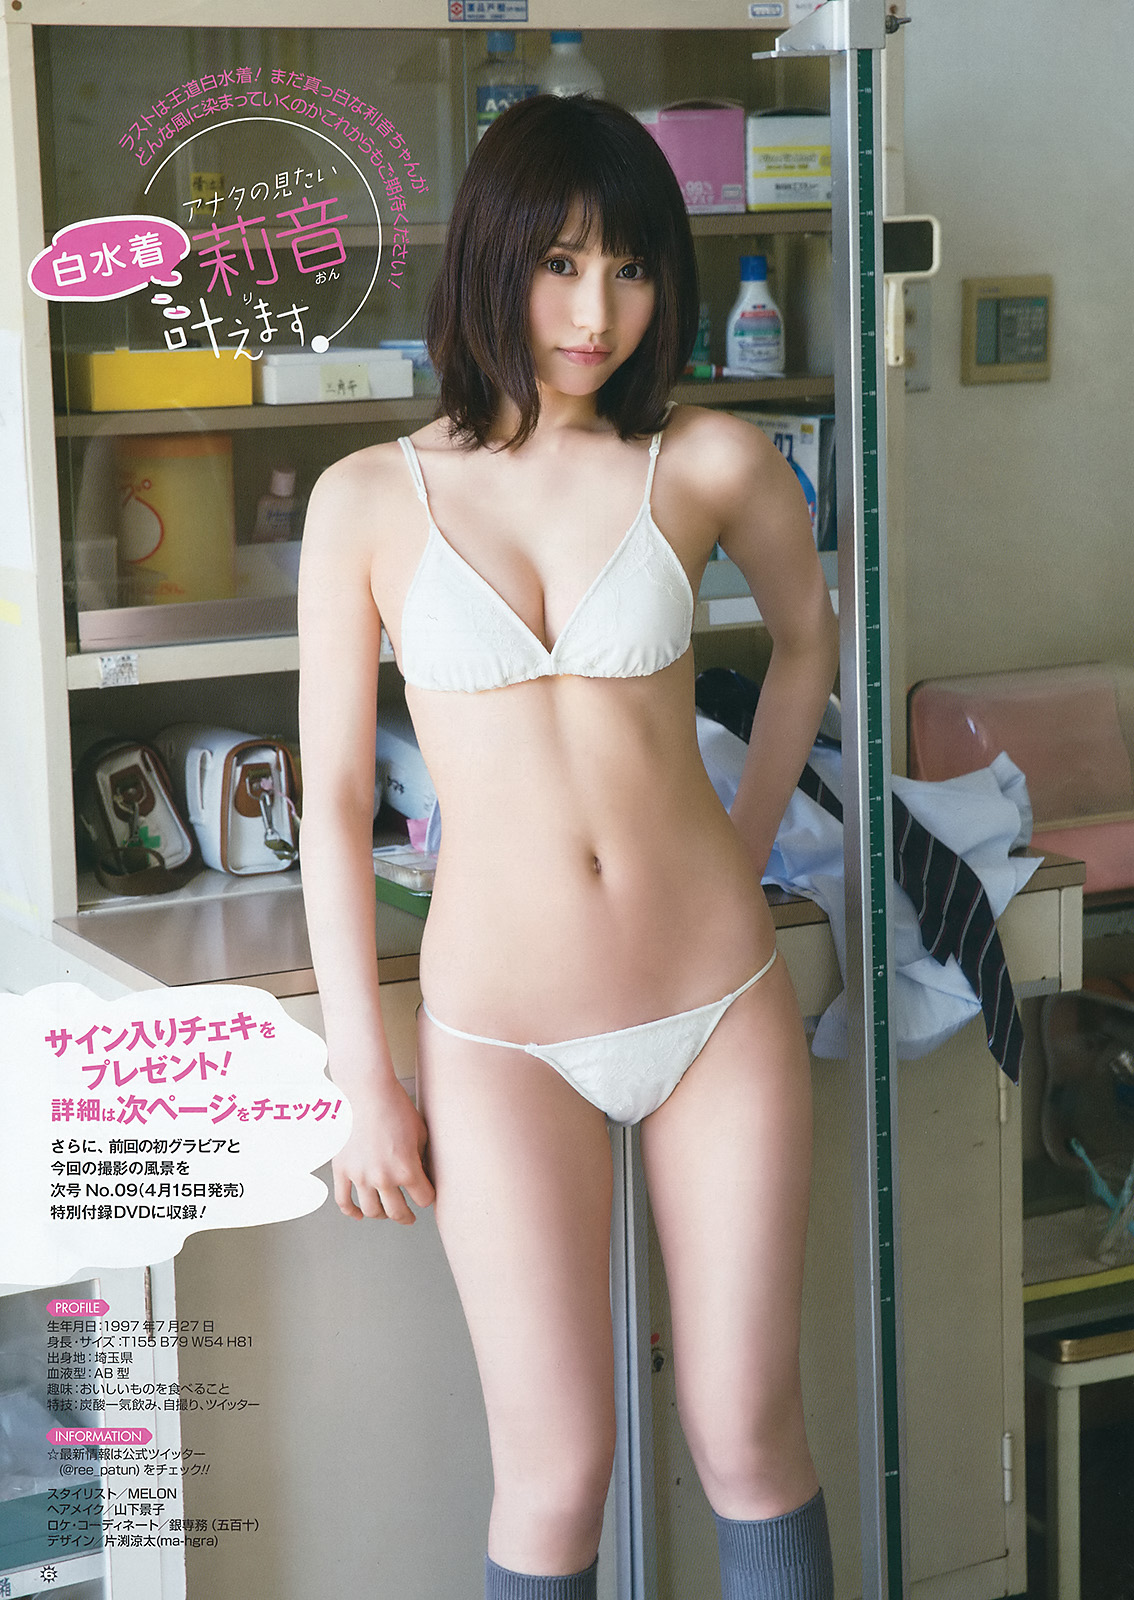 [Young Gangan] 2016 No.08 - Japanese Idol